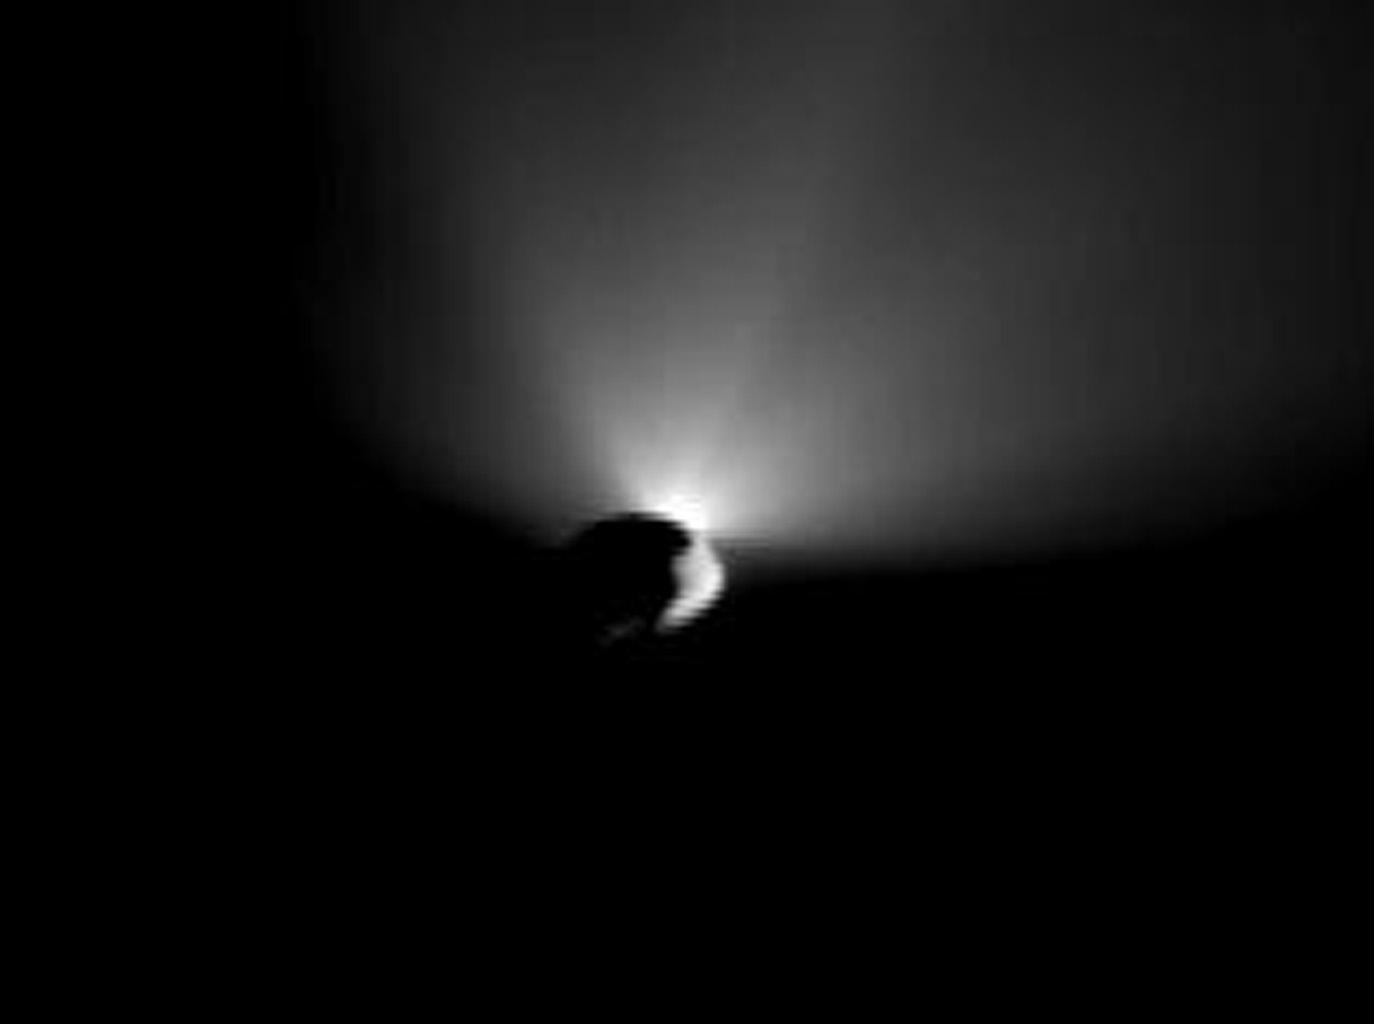 NASA's Deep Impact's flyby spacecraft took this image after it turned around to capture last shots of a receding comet Tempel 1. Earlier, the mission's probe had smashed into the surface of Tempel 1.